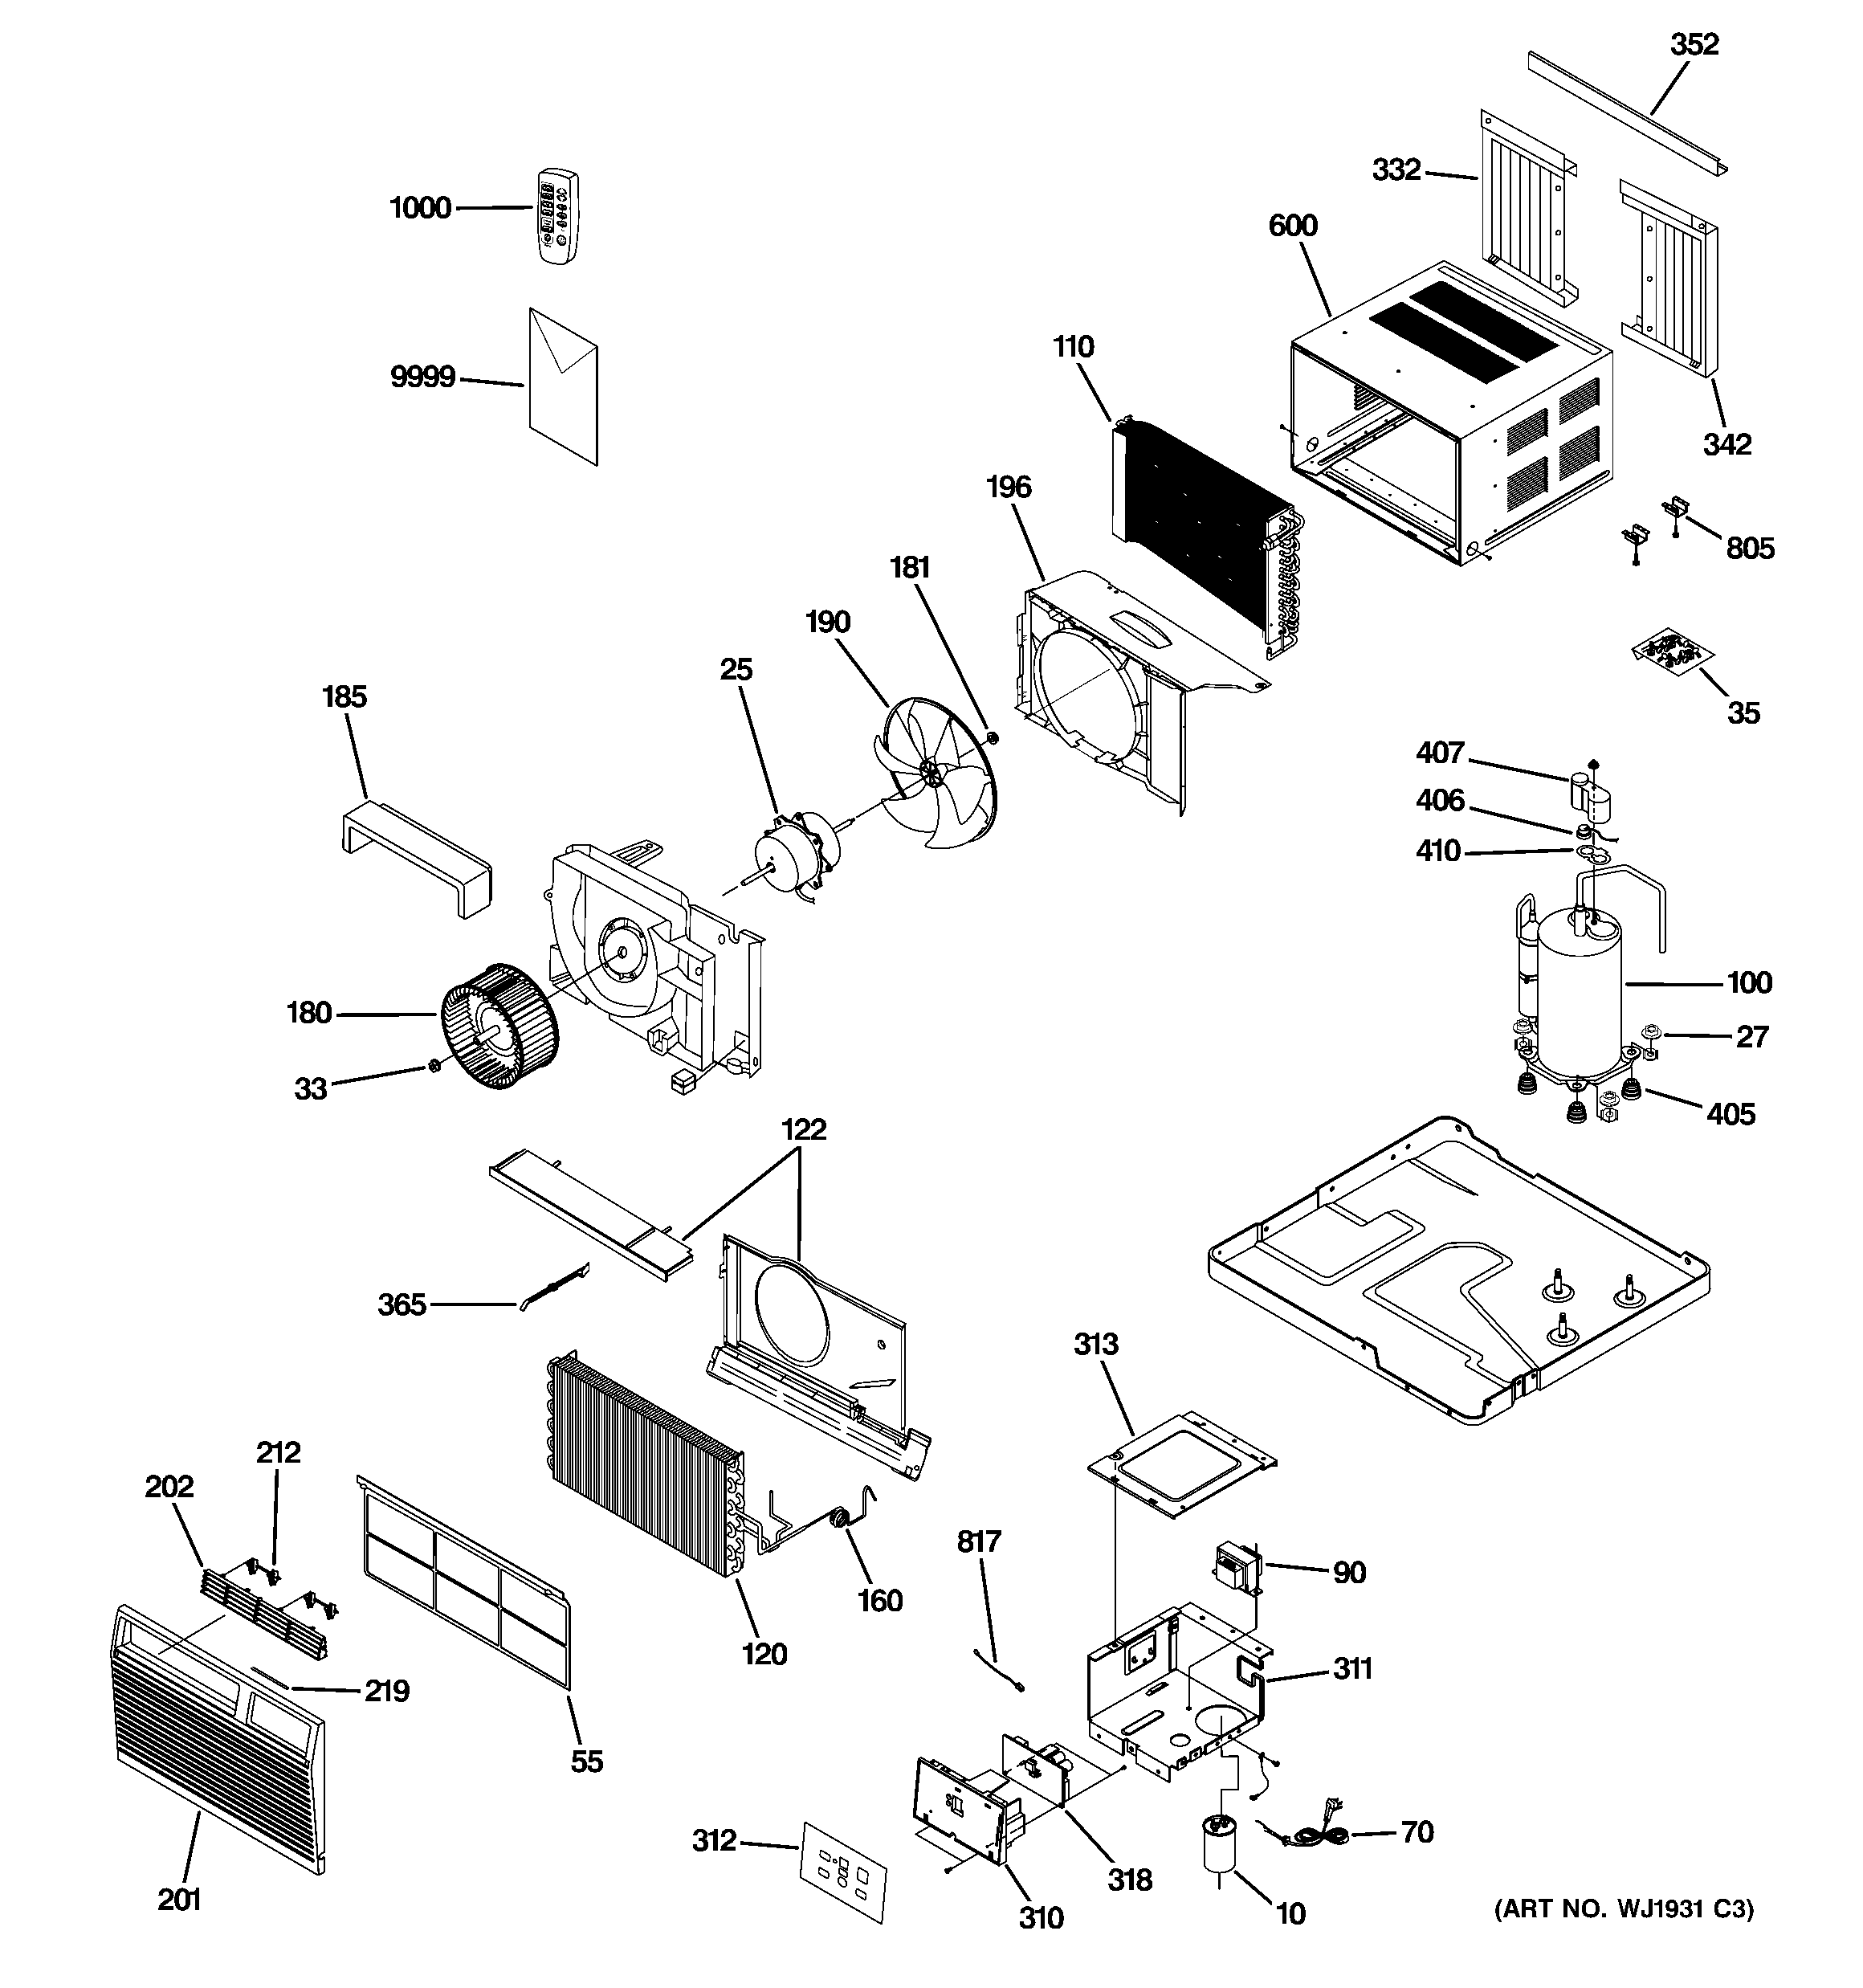 air conditioning components diagram 2000 gmc sierra 1500 headlight wiring ge room conditioner parts model asd06lls1 sears